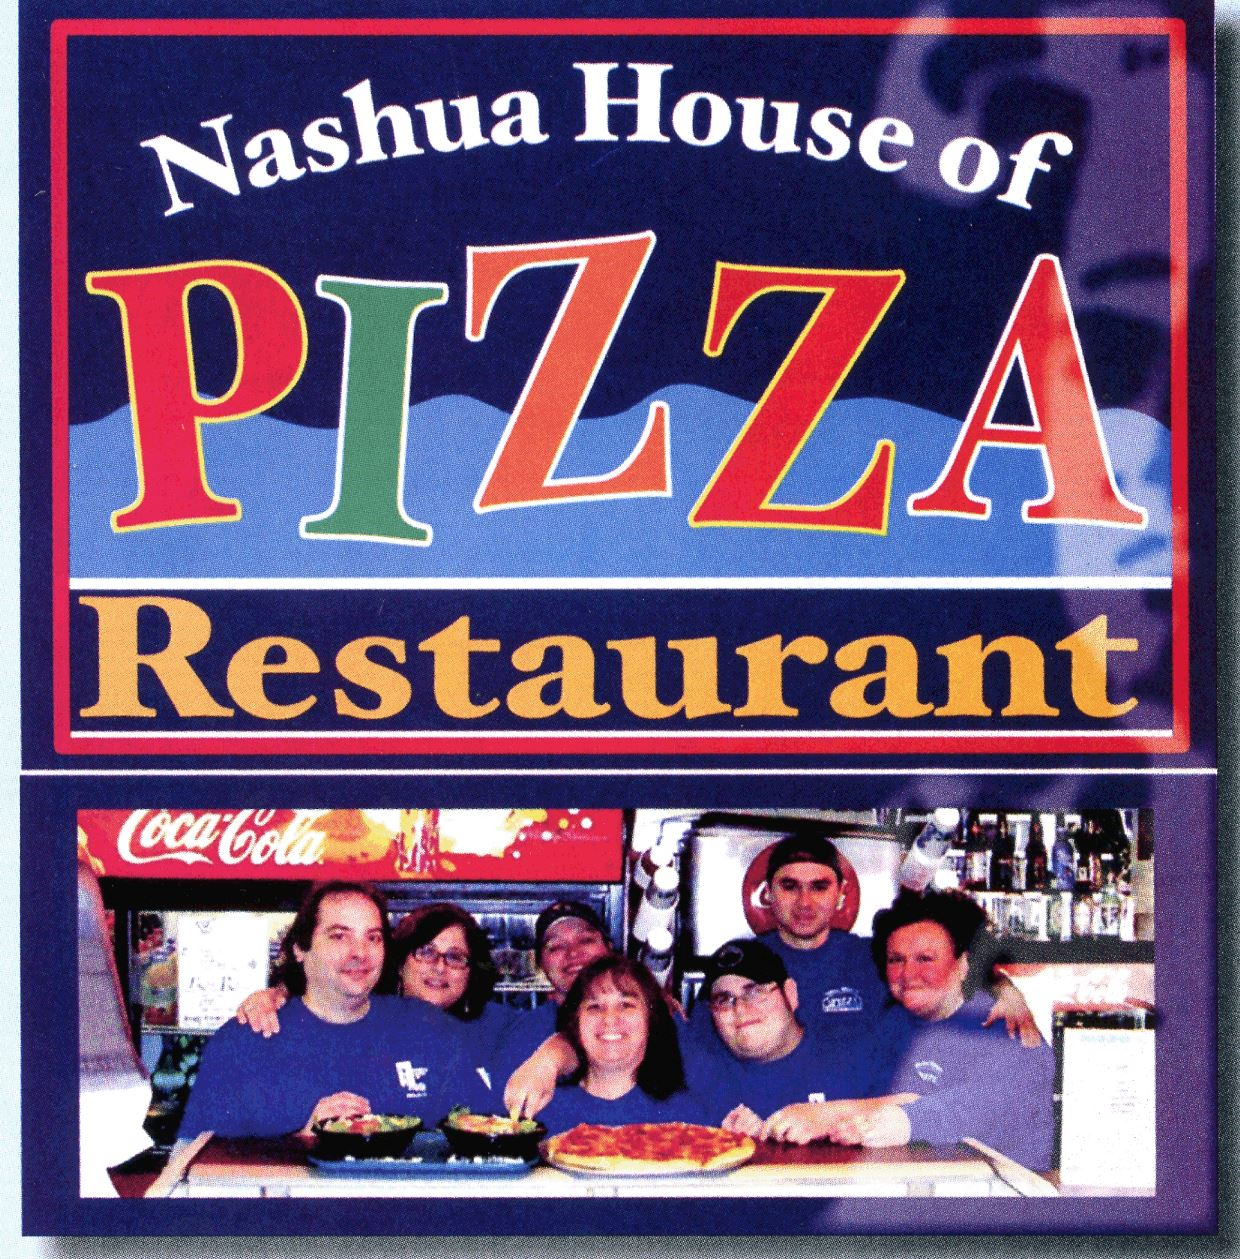 Nashua House of Pizza